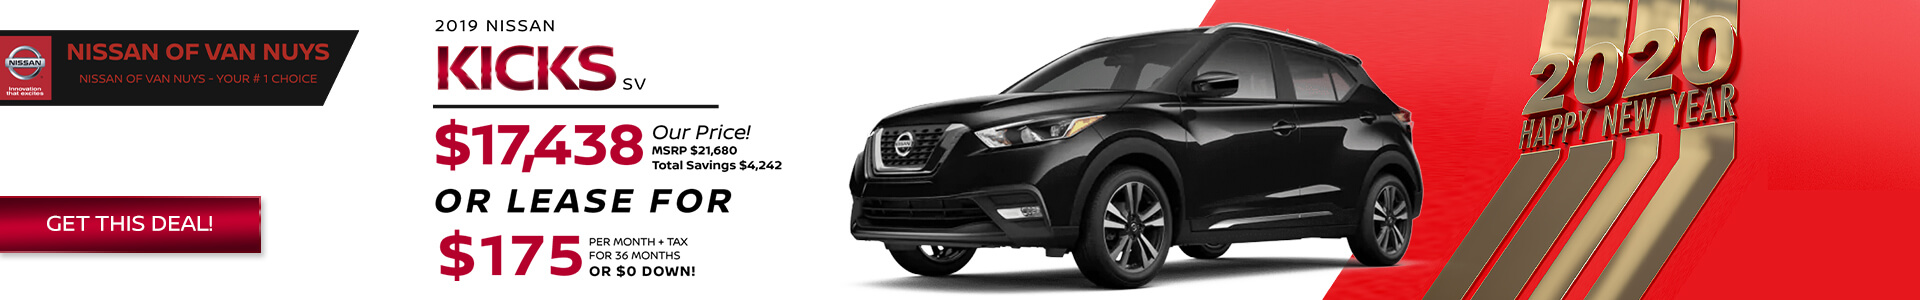 Nissan Kicks - Lease for $75